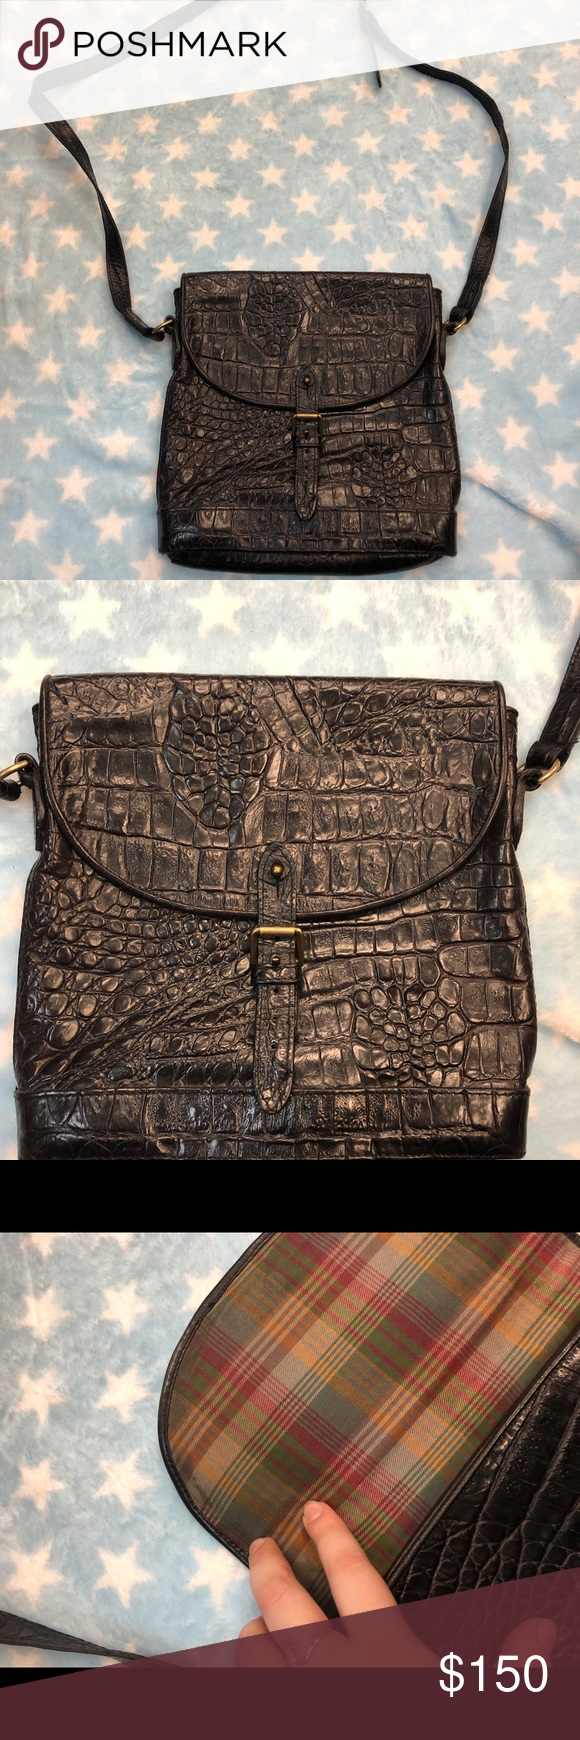 Mulberry crossbody bag Older bag! See all pictures for wear Mulberry Bags Crossbody Bags #mulberrybag